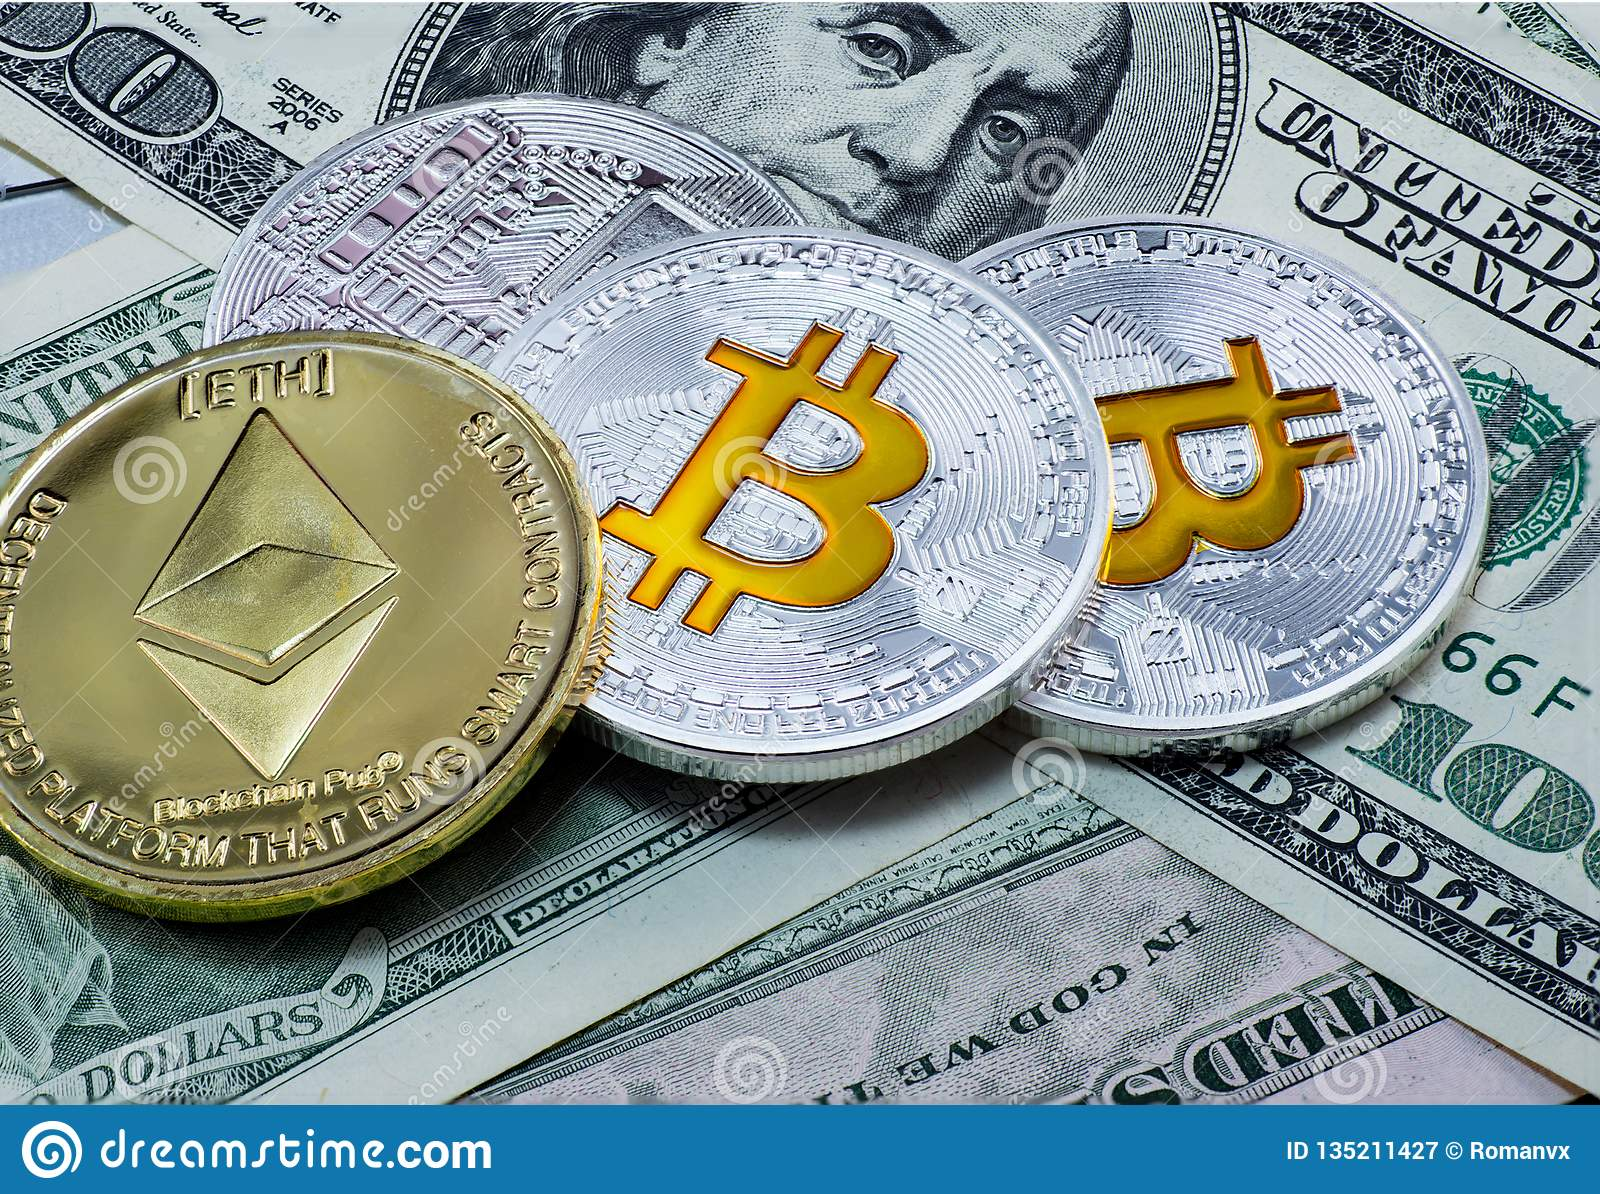 Gold coin etherium and coins bitcoins on the background dollar bills.